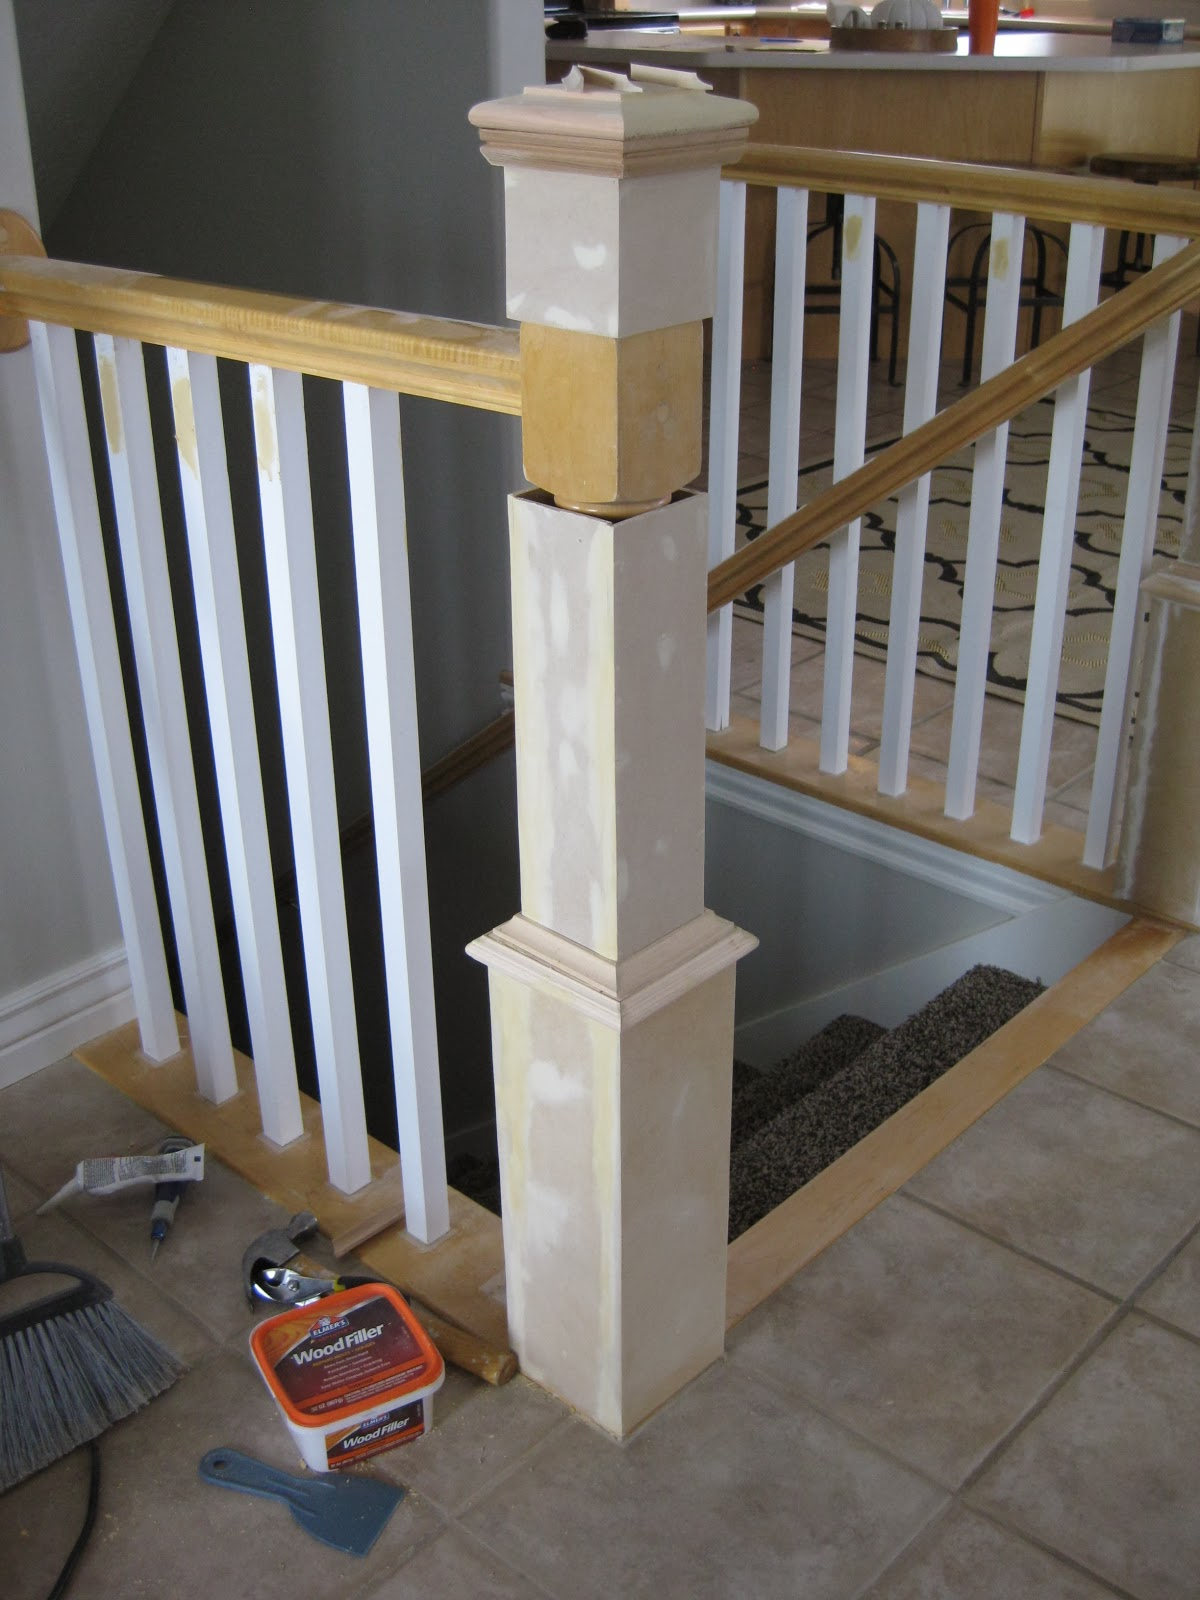 Remodelaholic stair banister renovation using existing newel post update a banister with diy newel post and spindles tda decorating and design featured on solutioingenieria Gallery